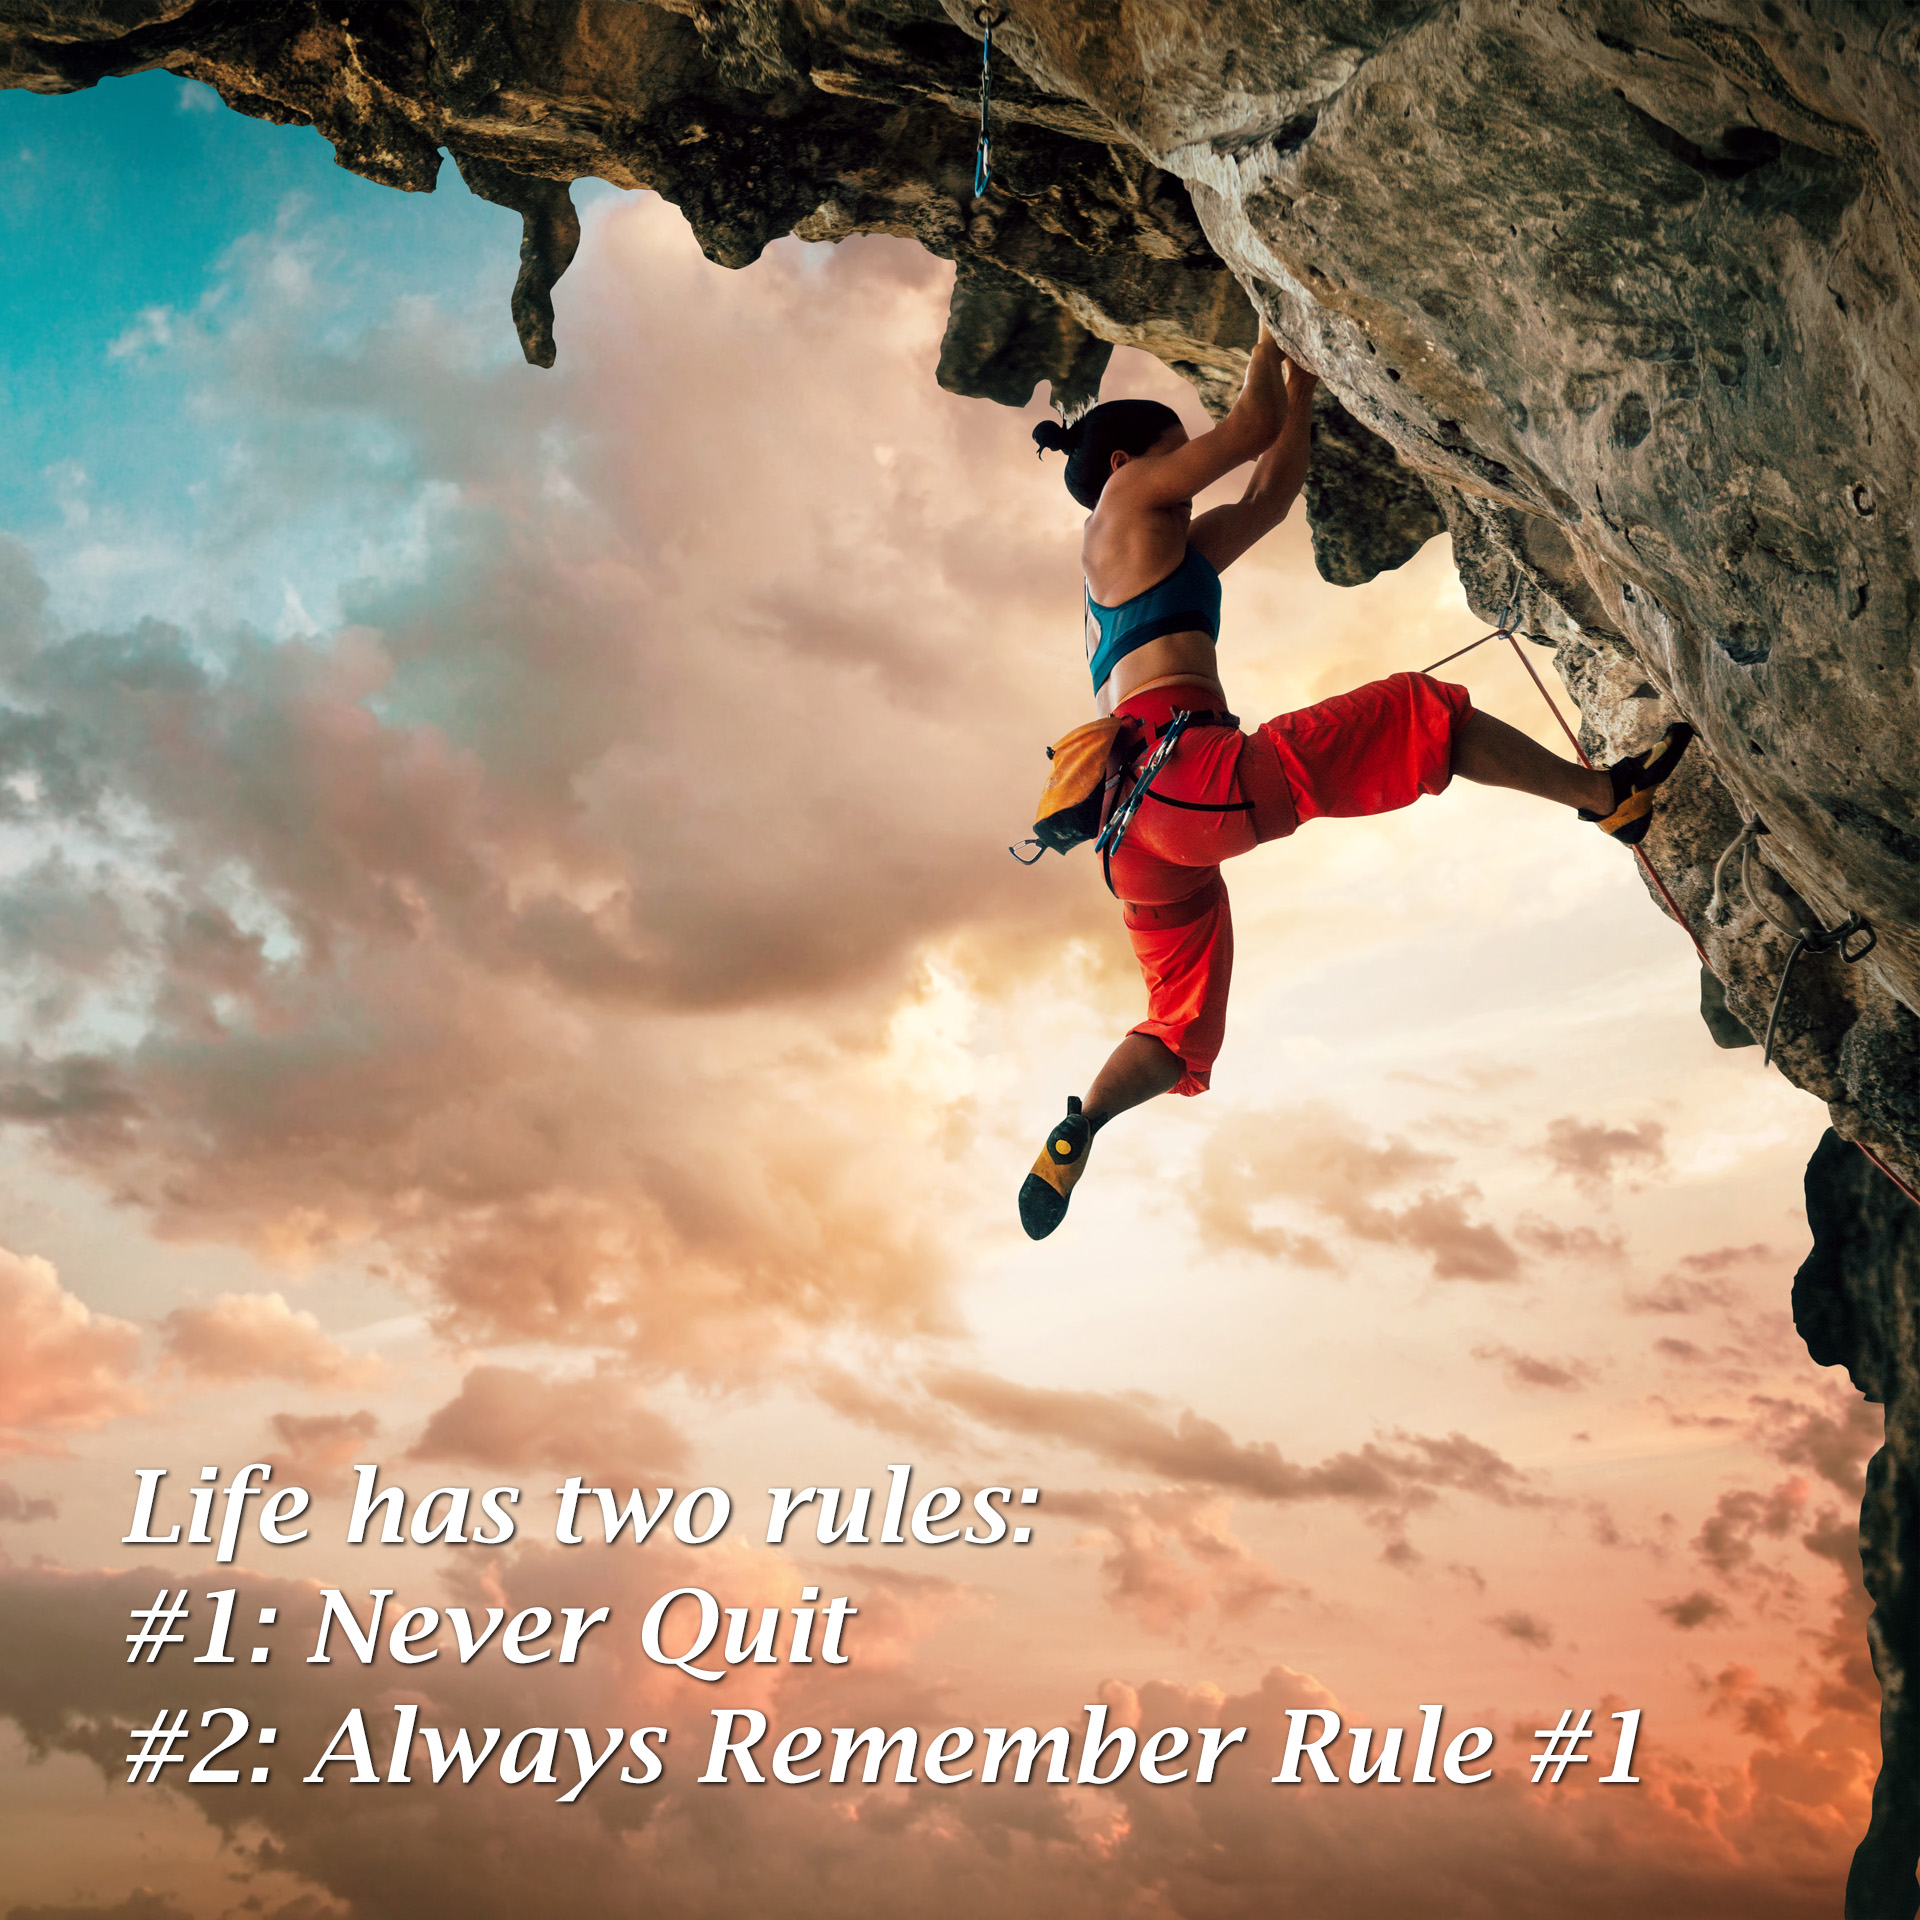 Life has two rules #1: Never Quit #2 Always Remember Rule #1